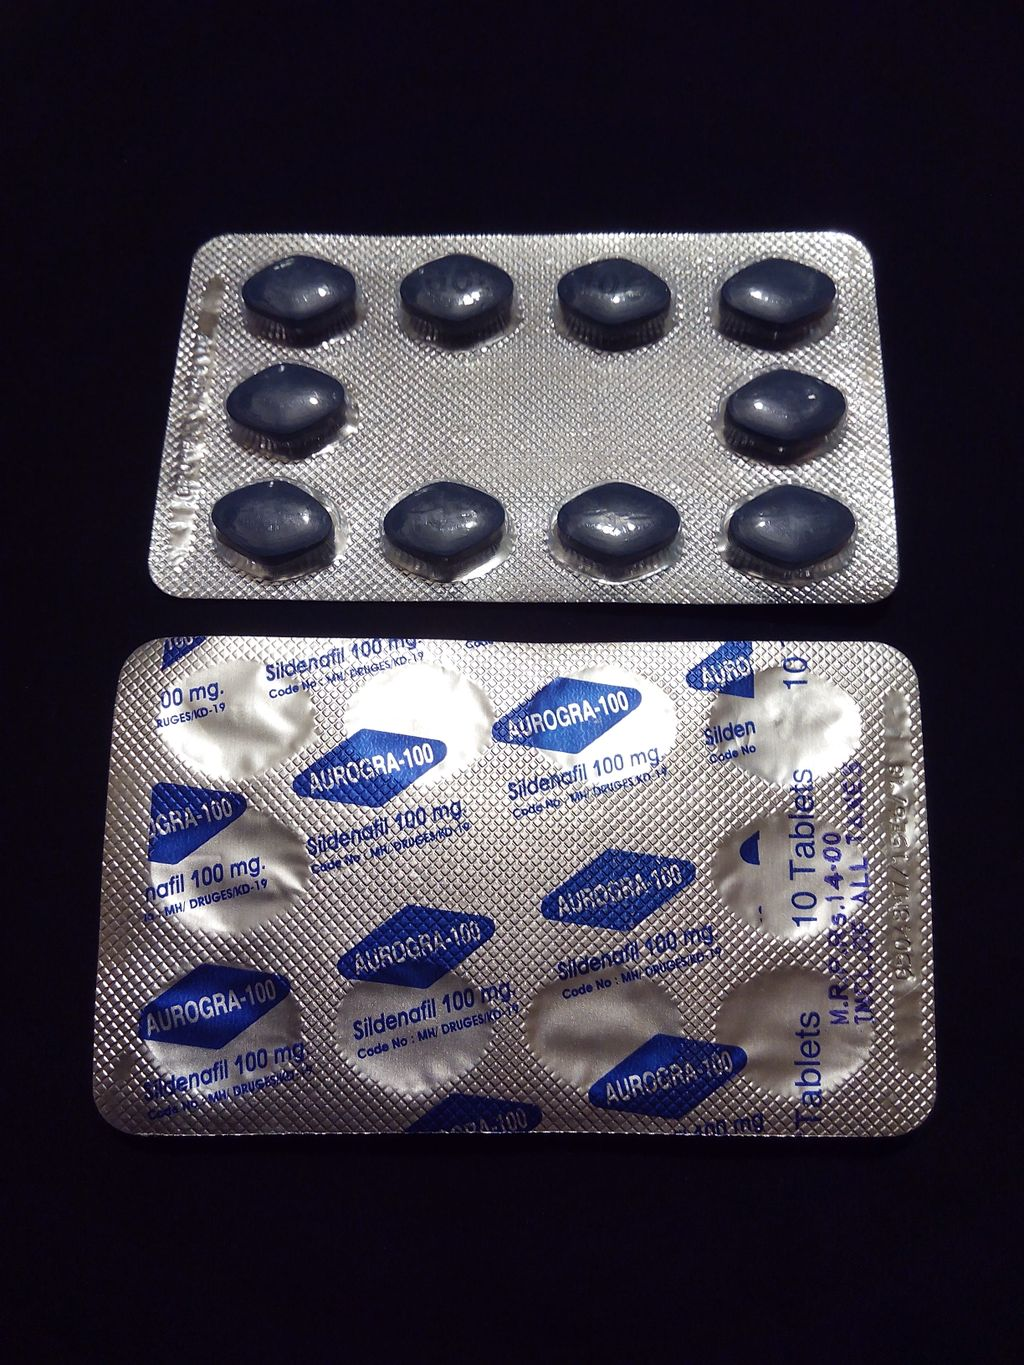 Doxycycline princepd